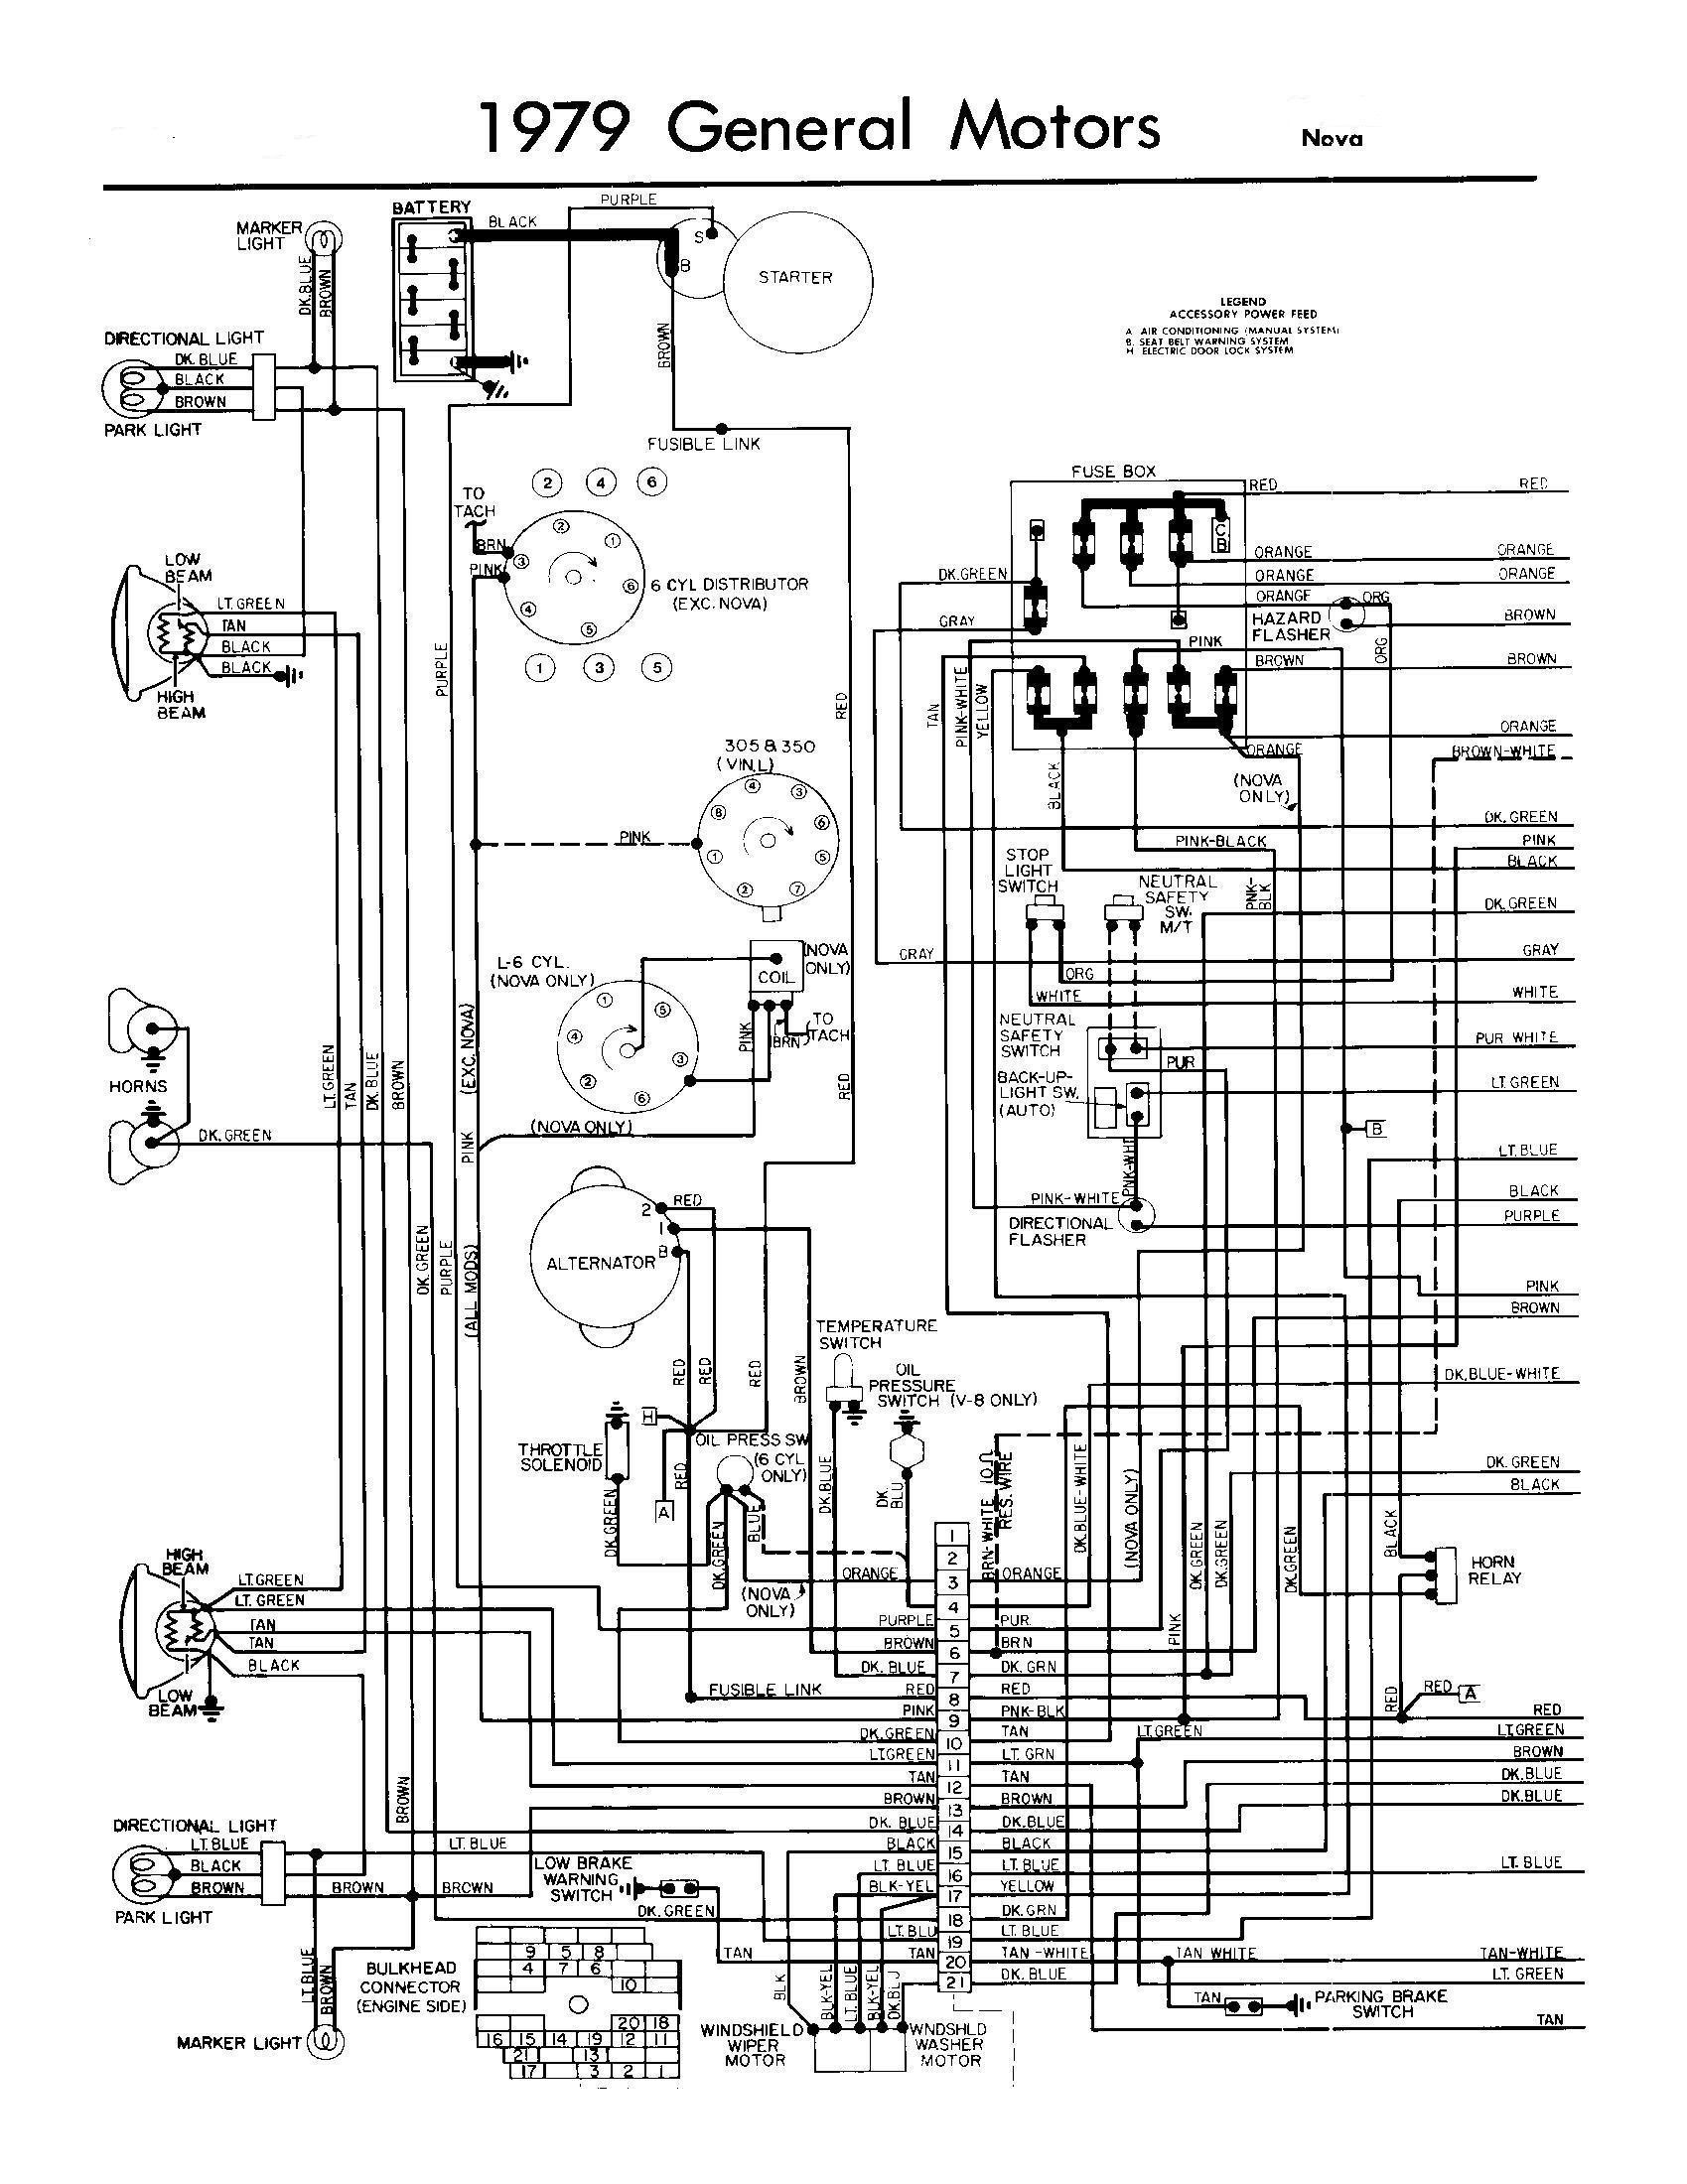 385 chevy 305 engine wiring harness | wiring library  wiring library